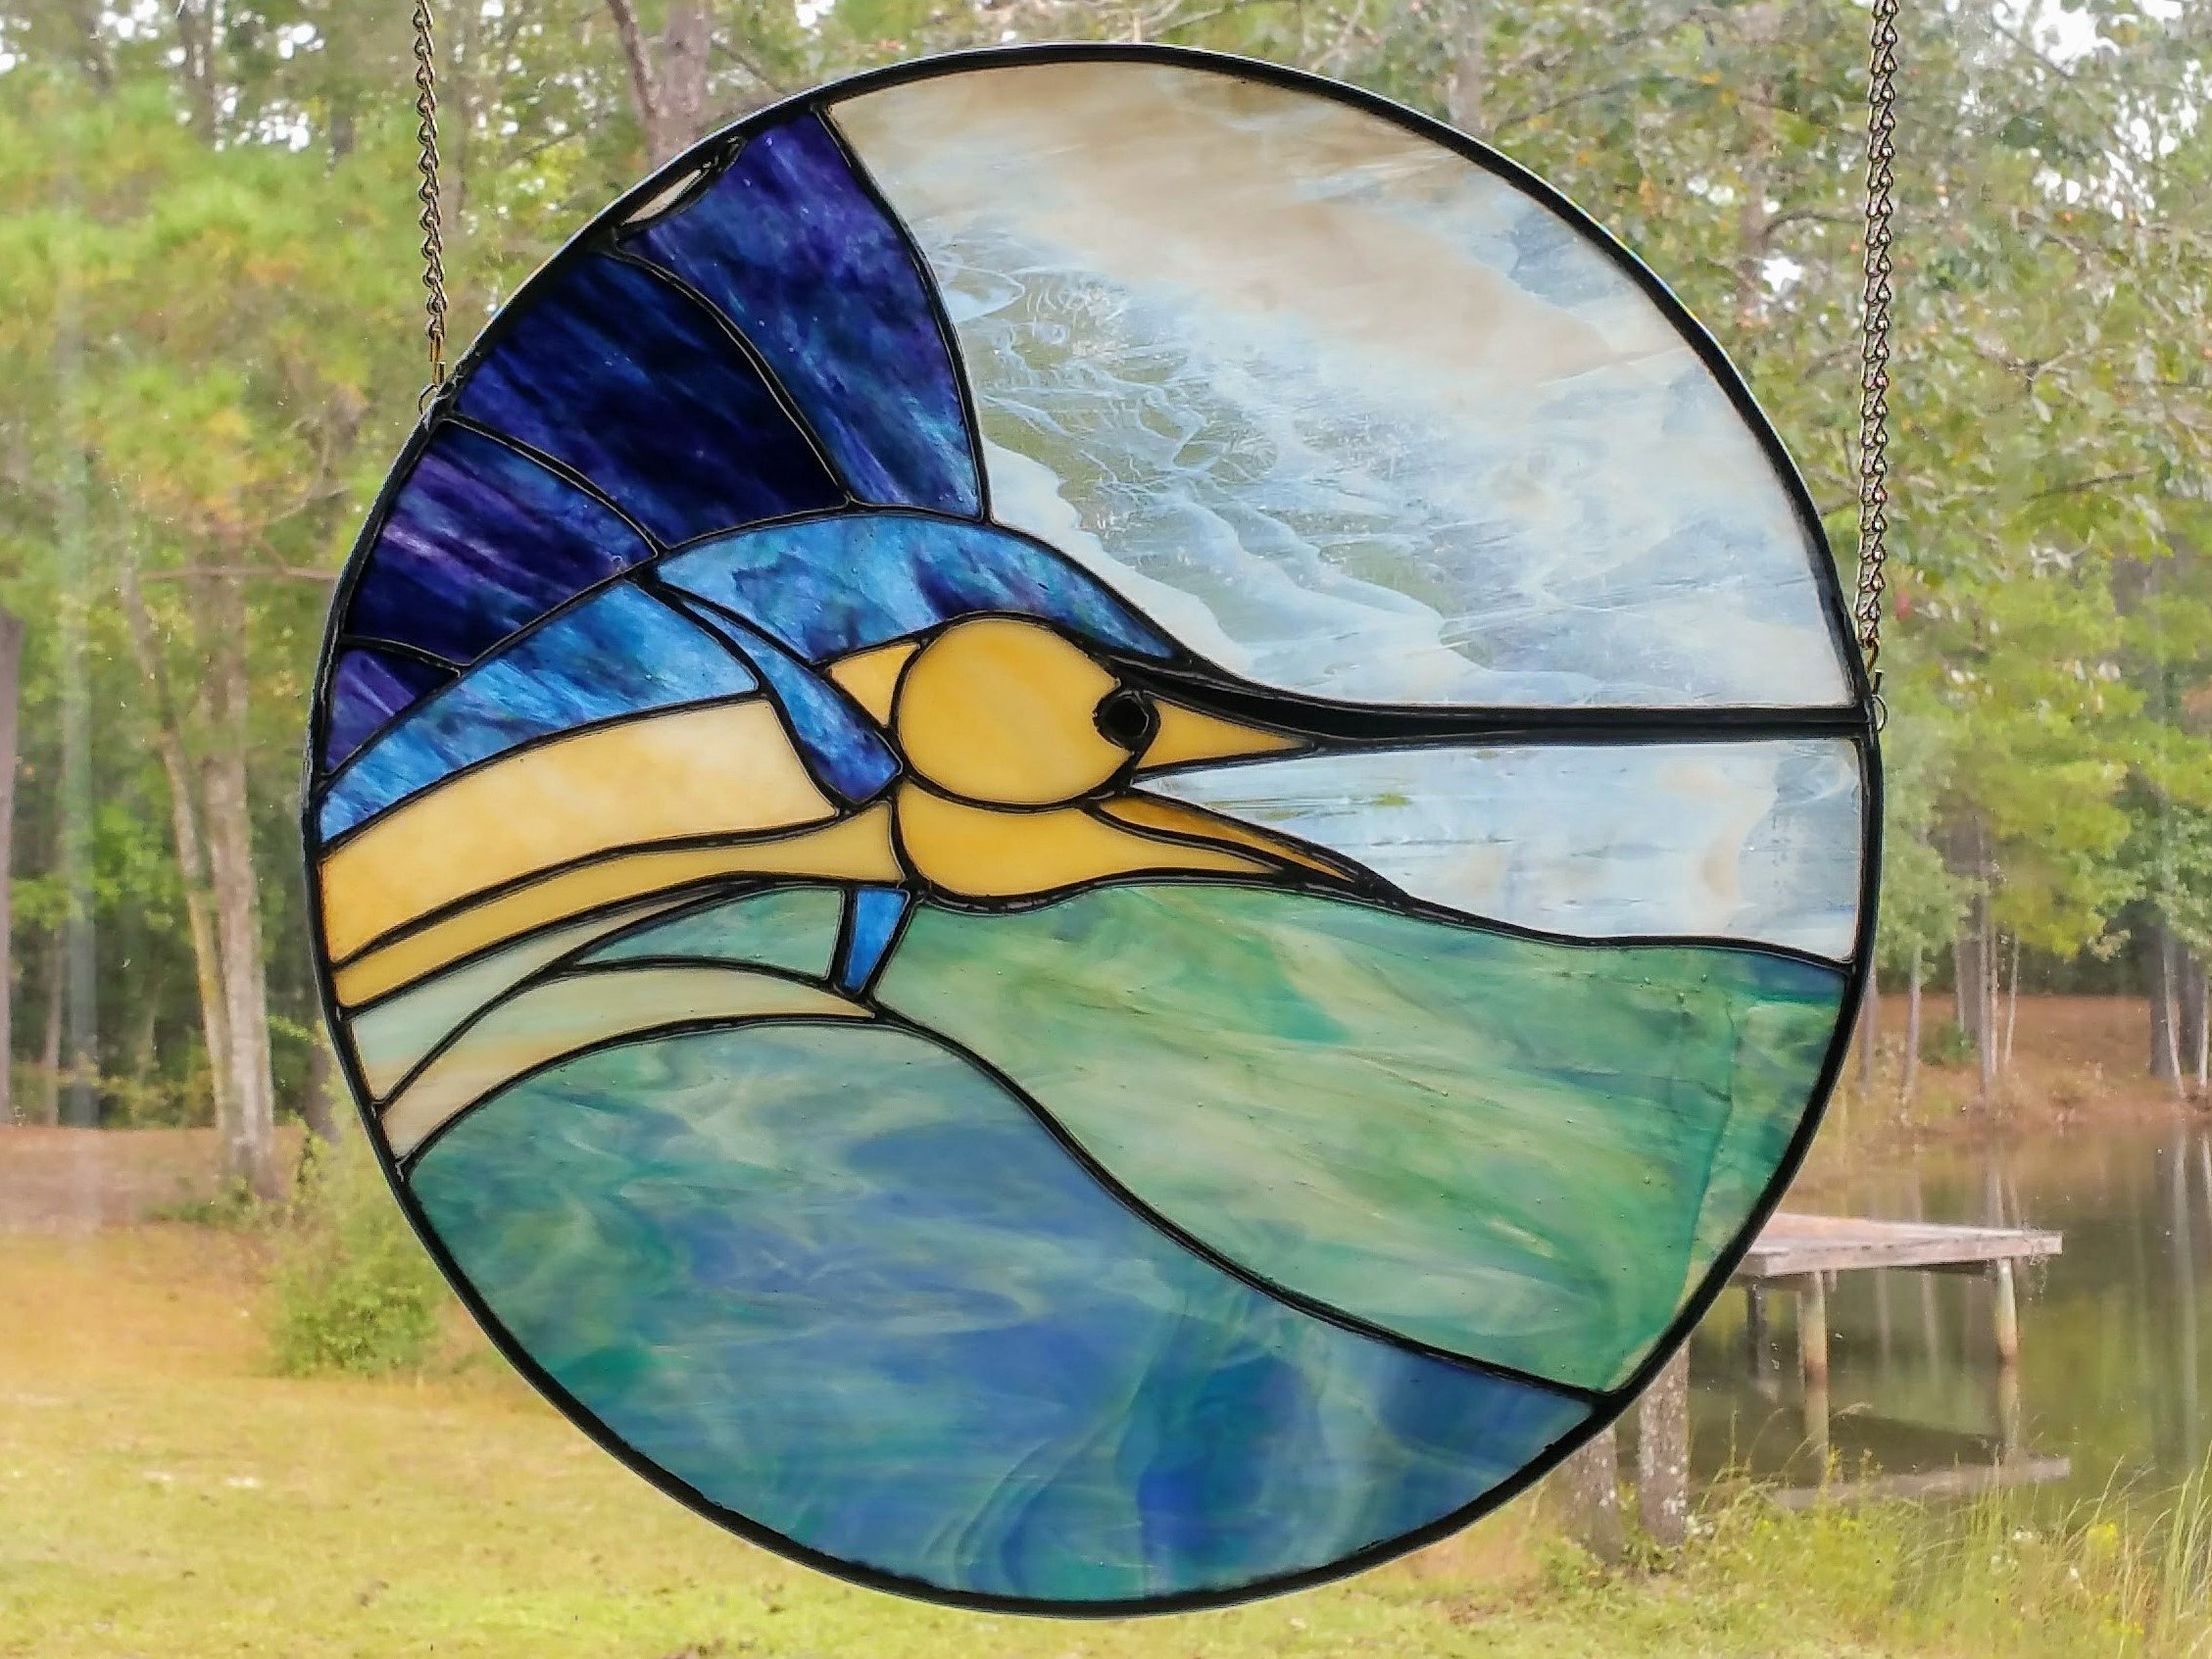 Handmade Stained Glass Sailfish Istiophorus Marlin Wall Hanging Ocean Window Art Suncatcher Island Beach House Decor